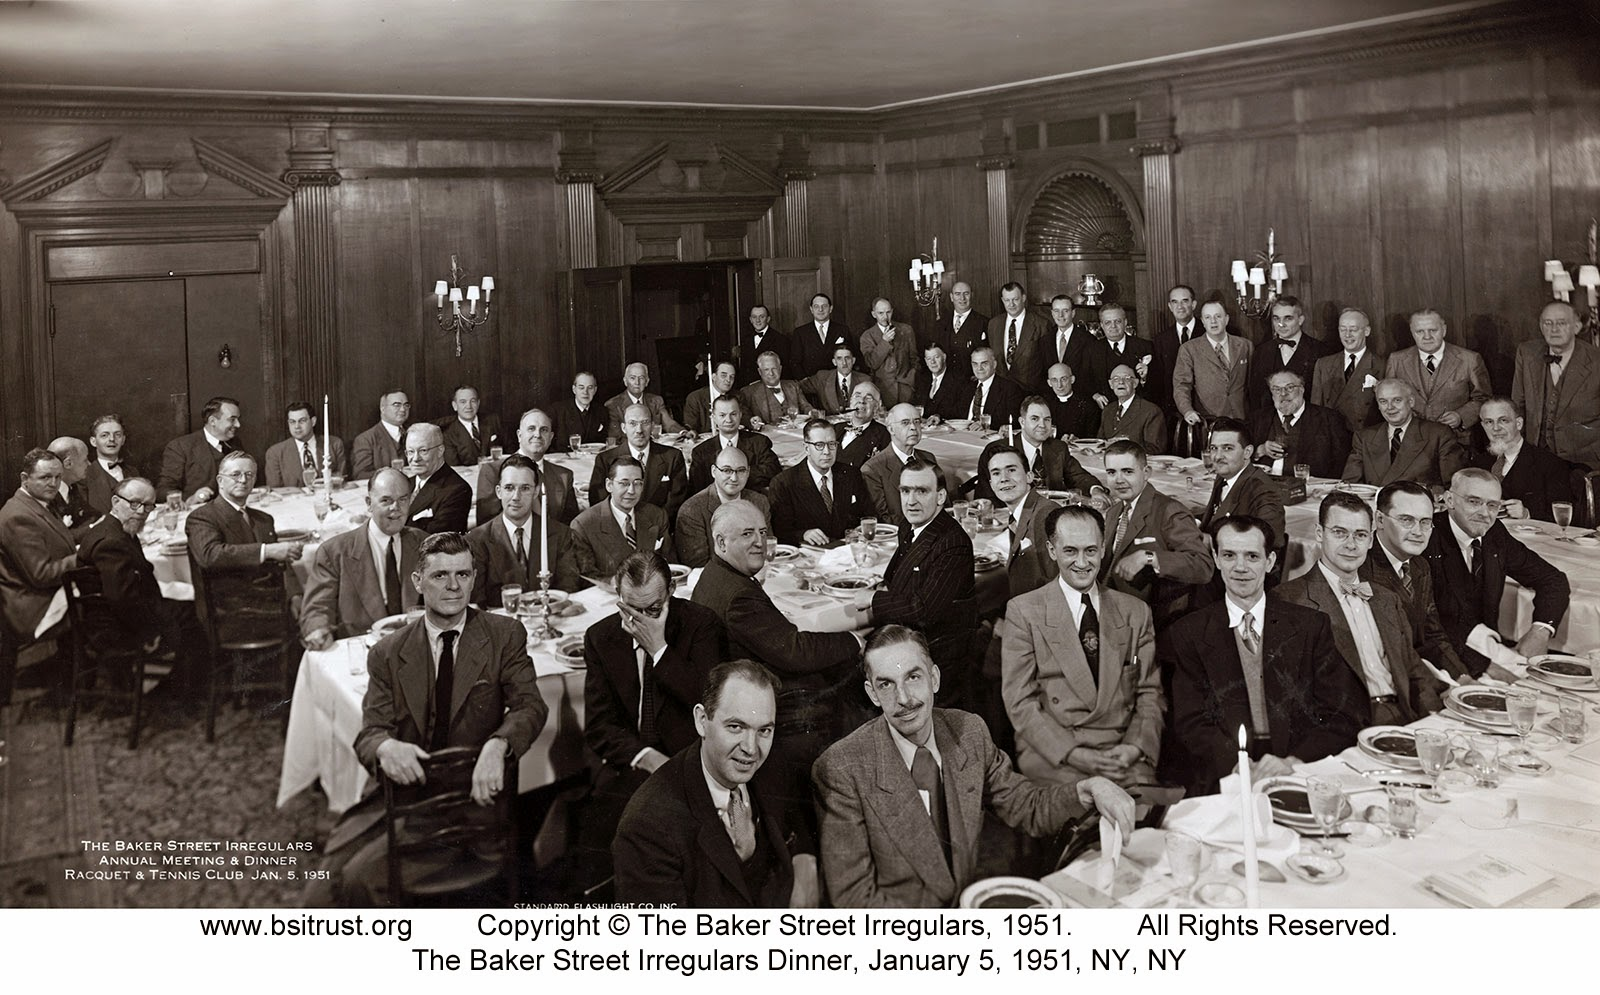 The 1951 BSI Dinner group photo